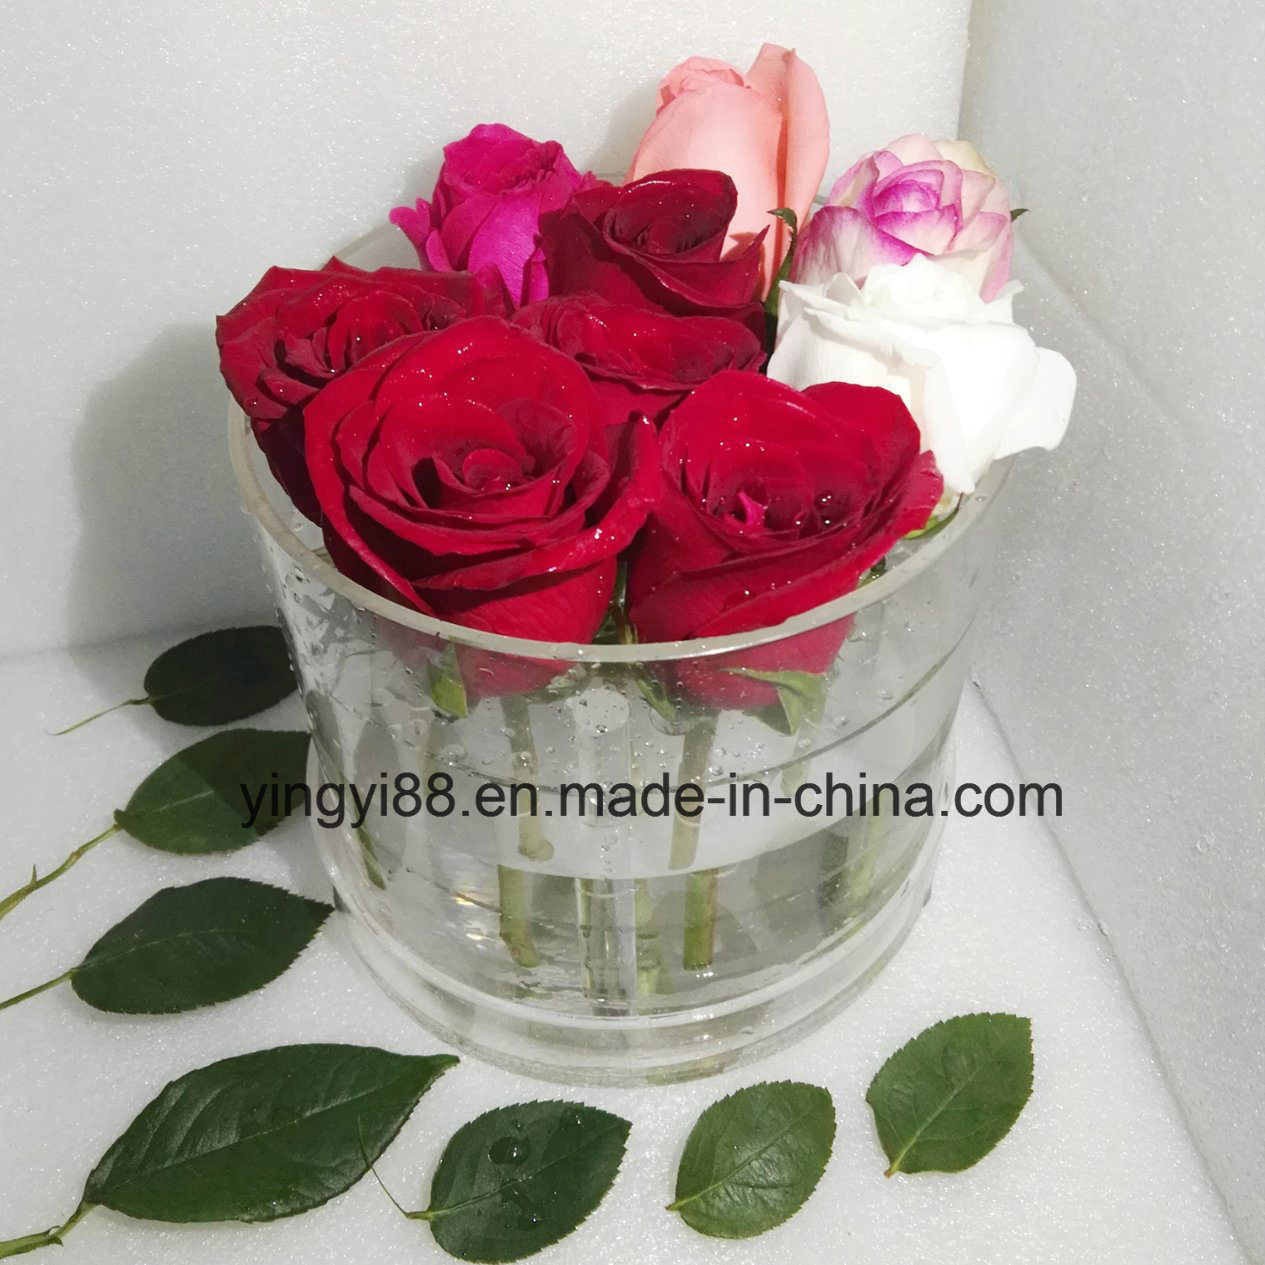 Waterproof Clear Acrylic Flower Storage Box /Rose Packing Box Shenzhen Manufacturer